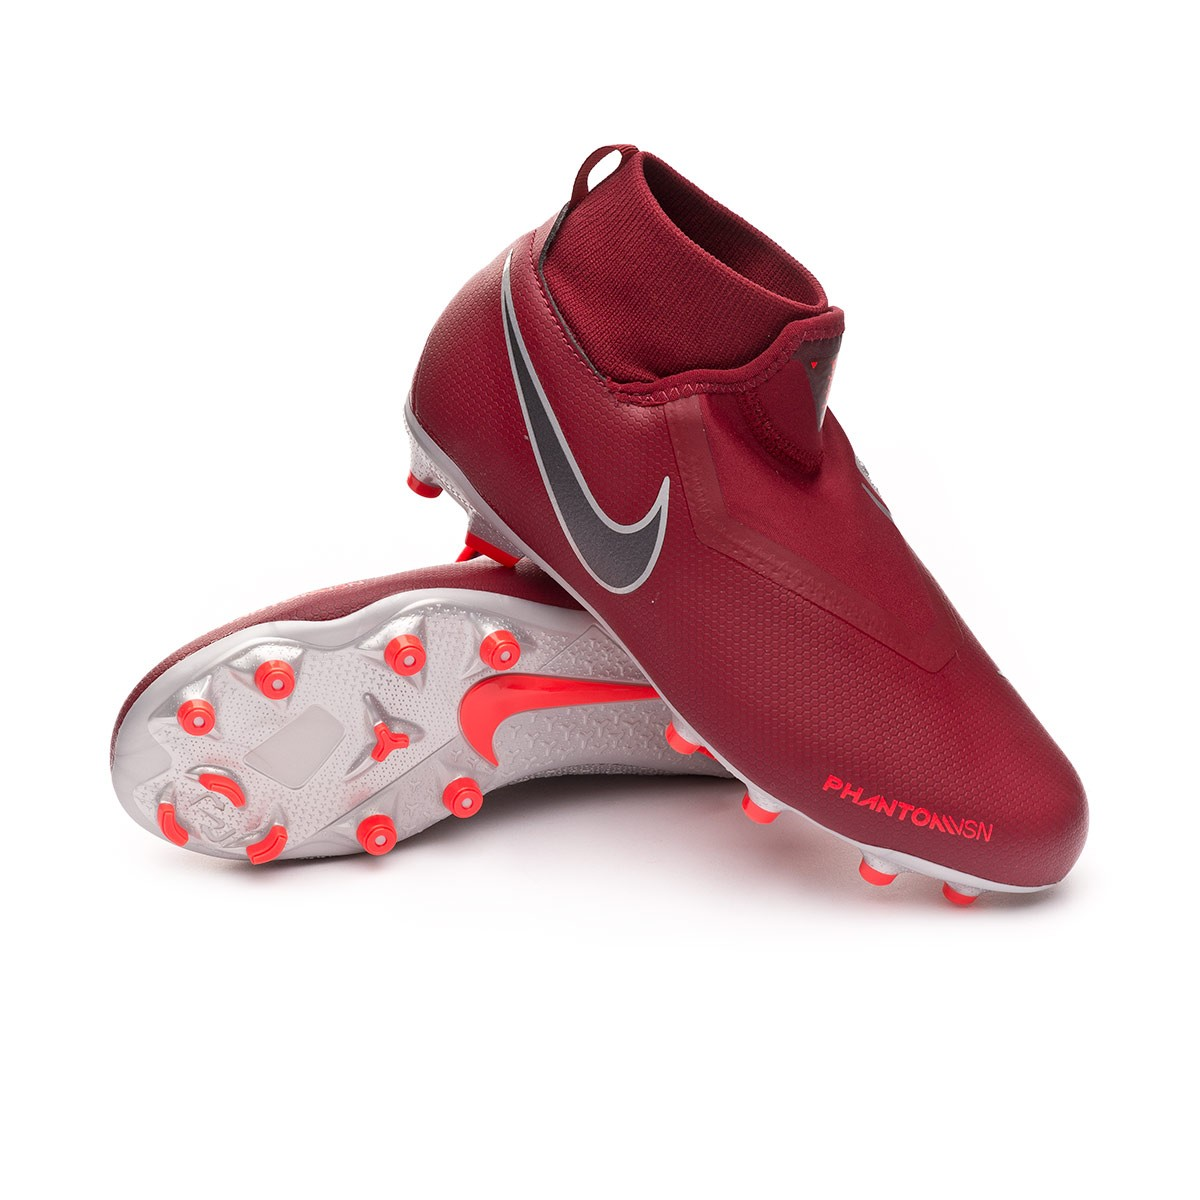 930d9ee8a Nike Kids Phantom Vision Academy DF MG Football Boots. Team red-Metallic  dark grey-Bright ...